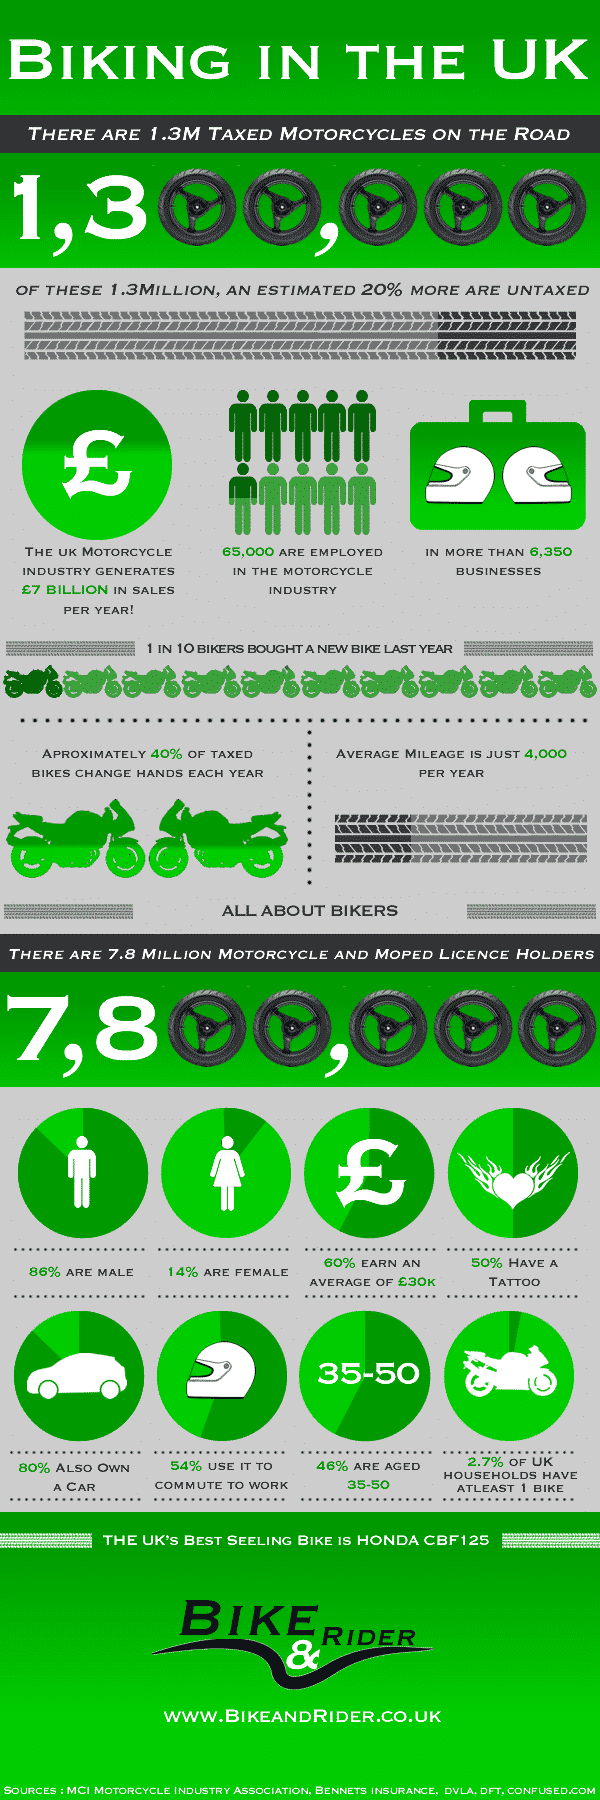 InfographicBike